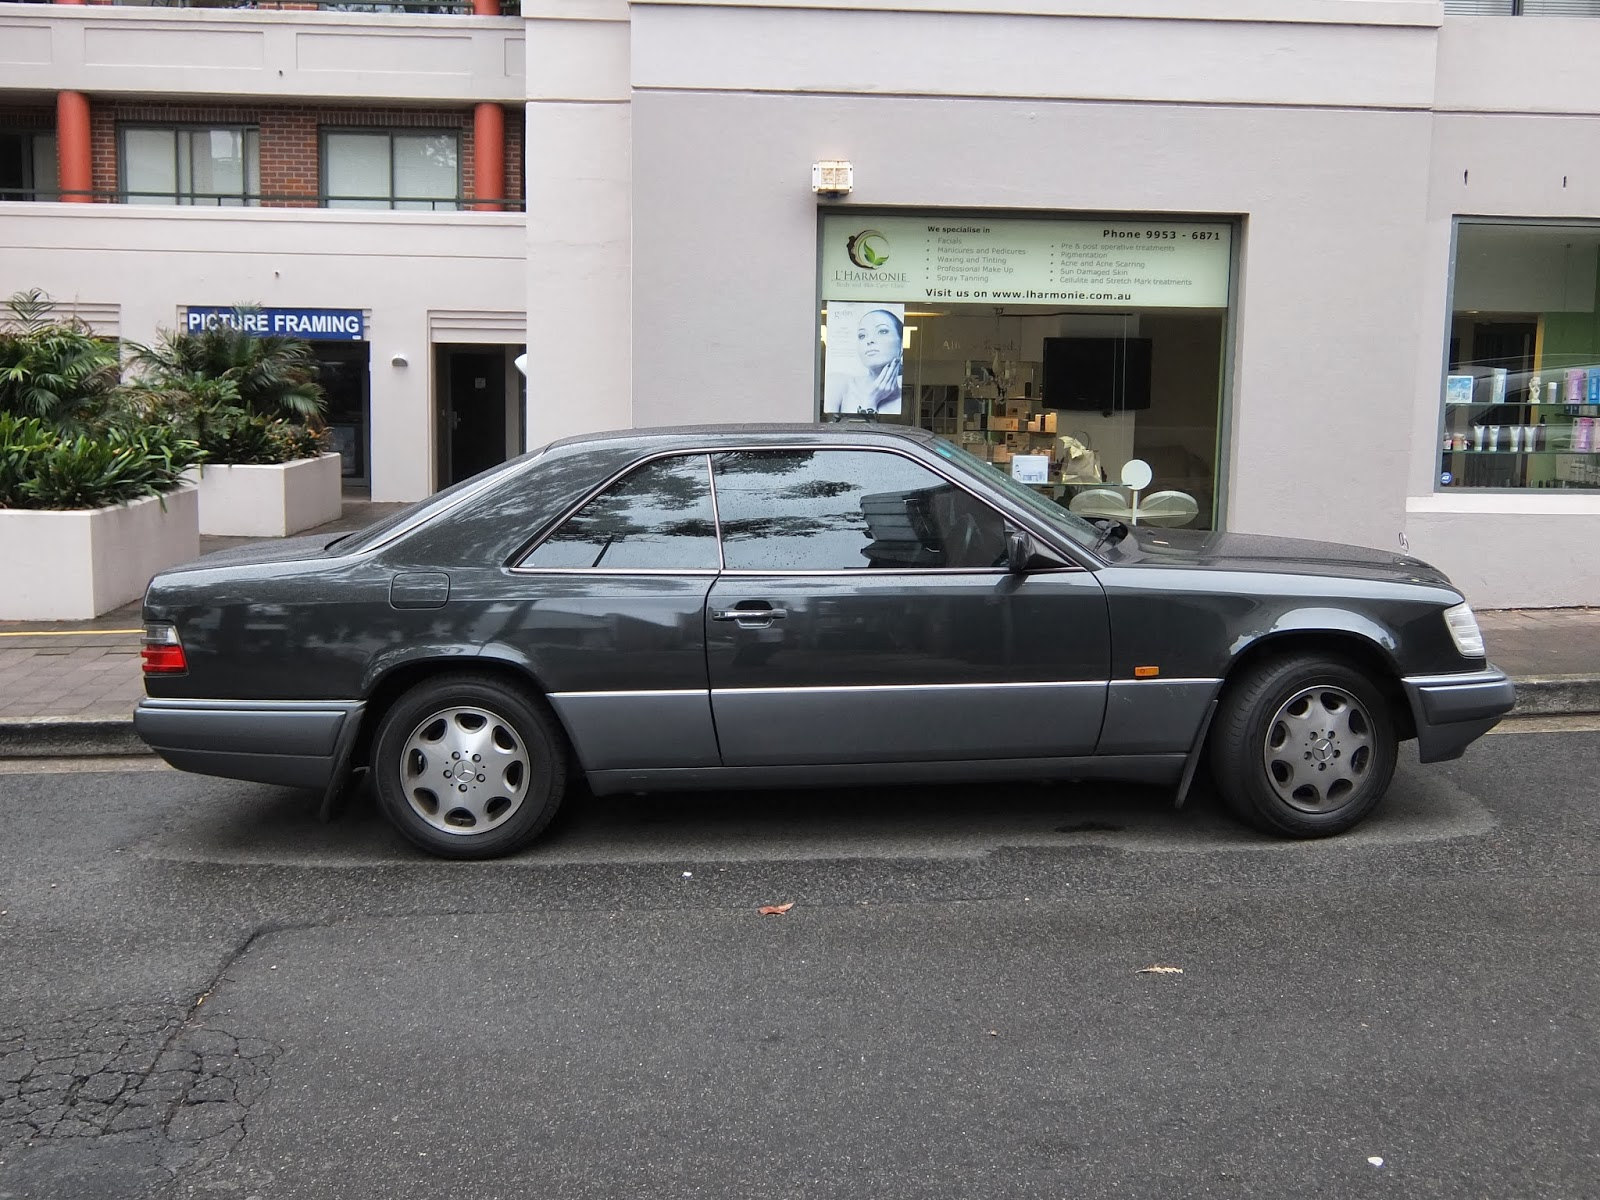 aussie old parked cars 1996 mercedes benz w124 e 220 coupe. Black Bedroom Furniture Sets. Home Design Ideas